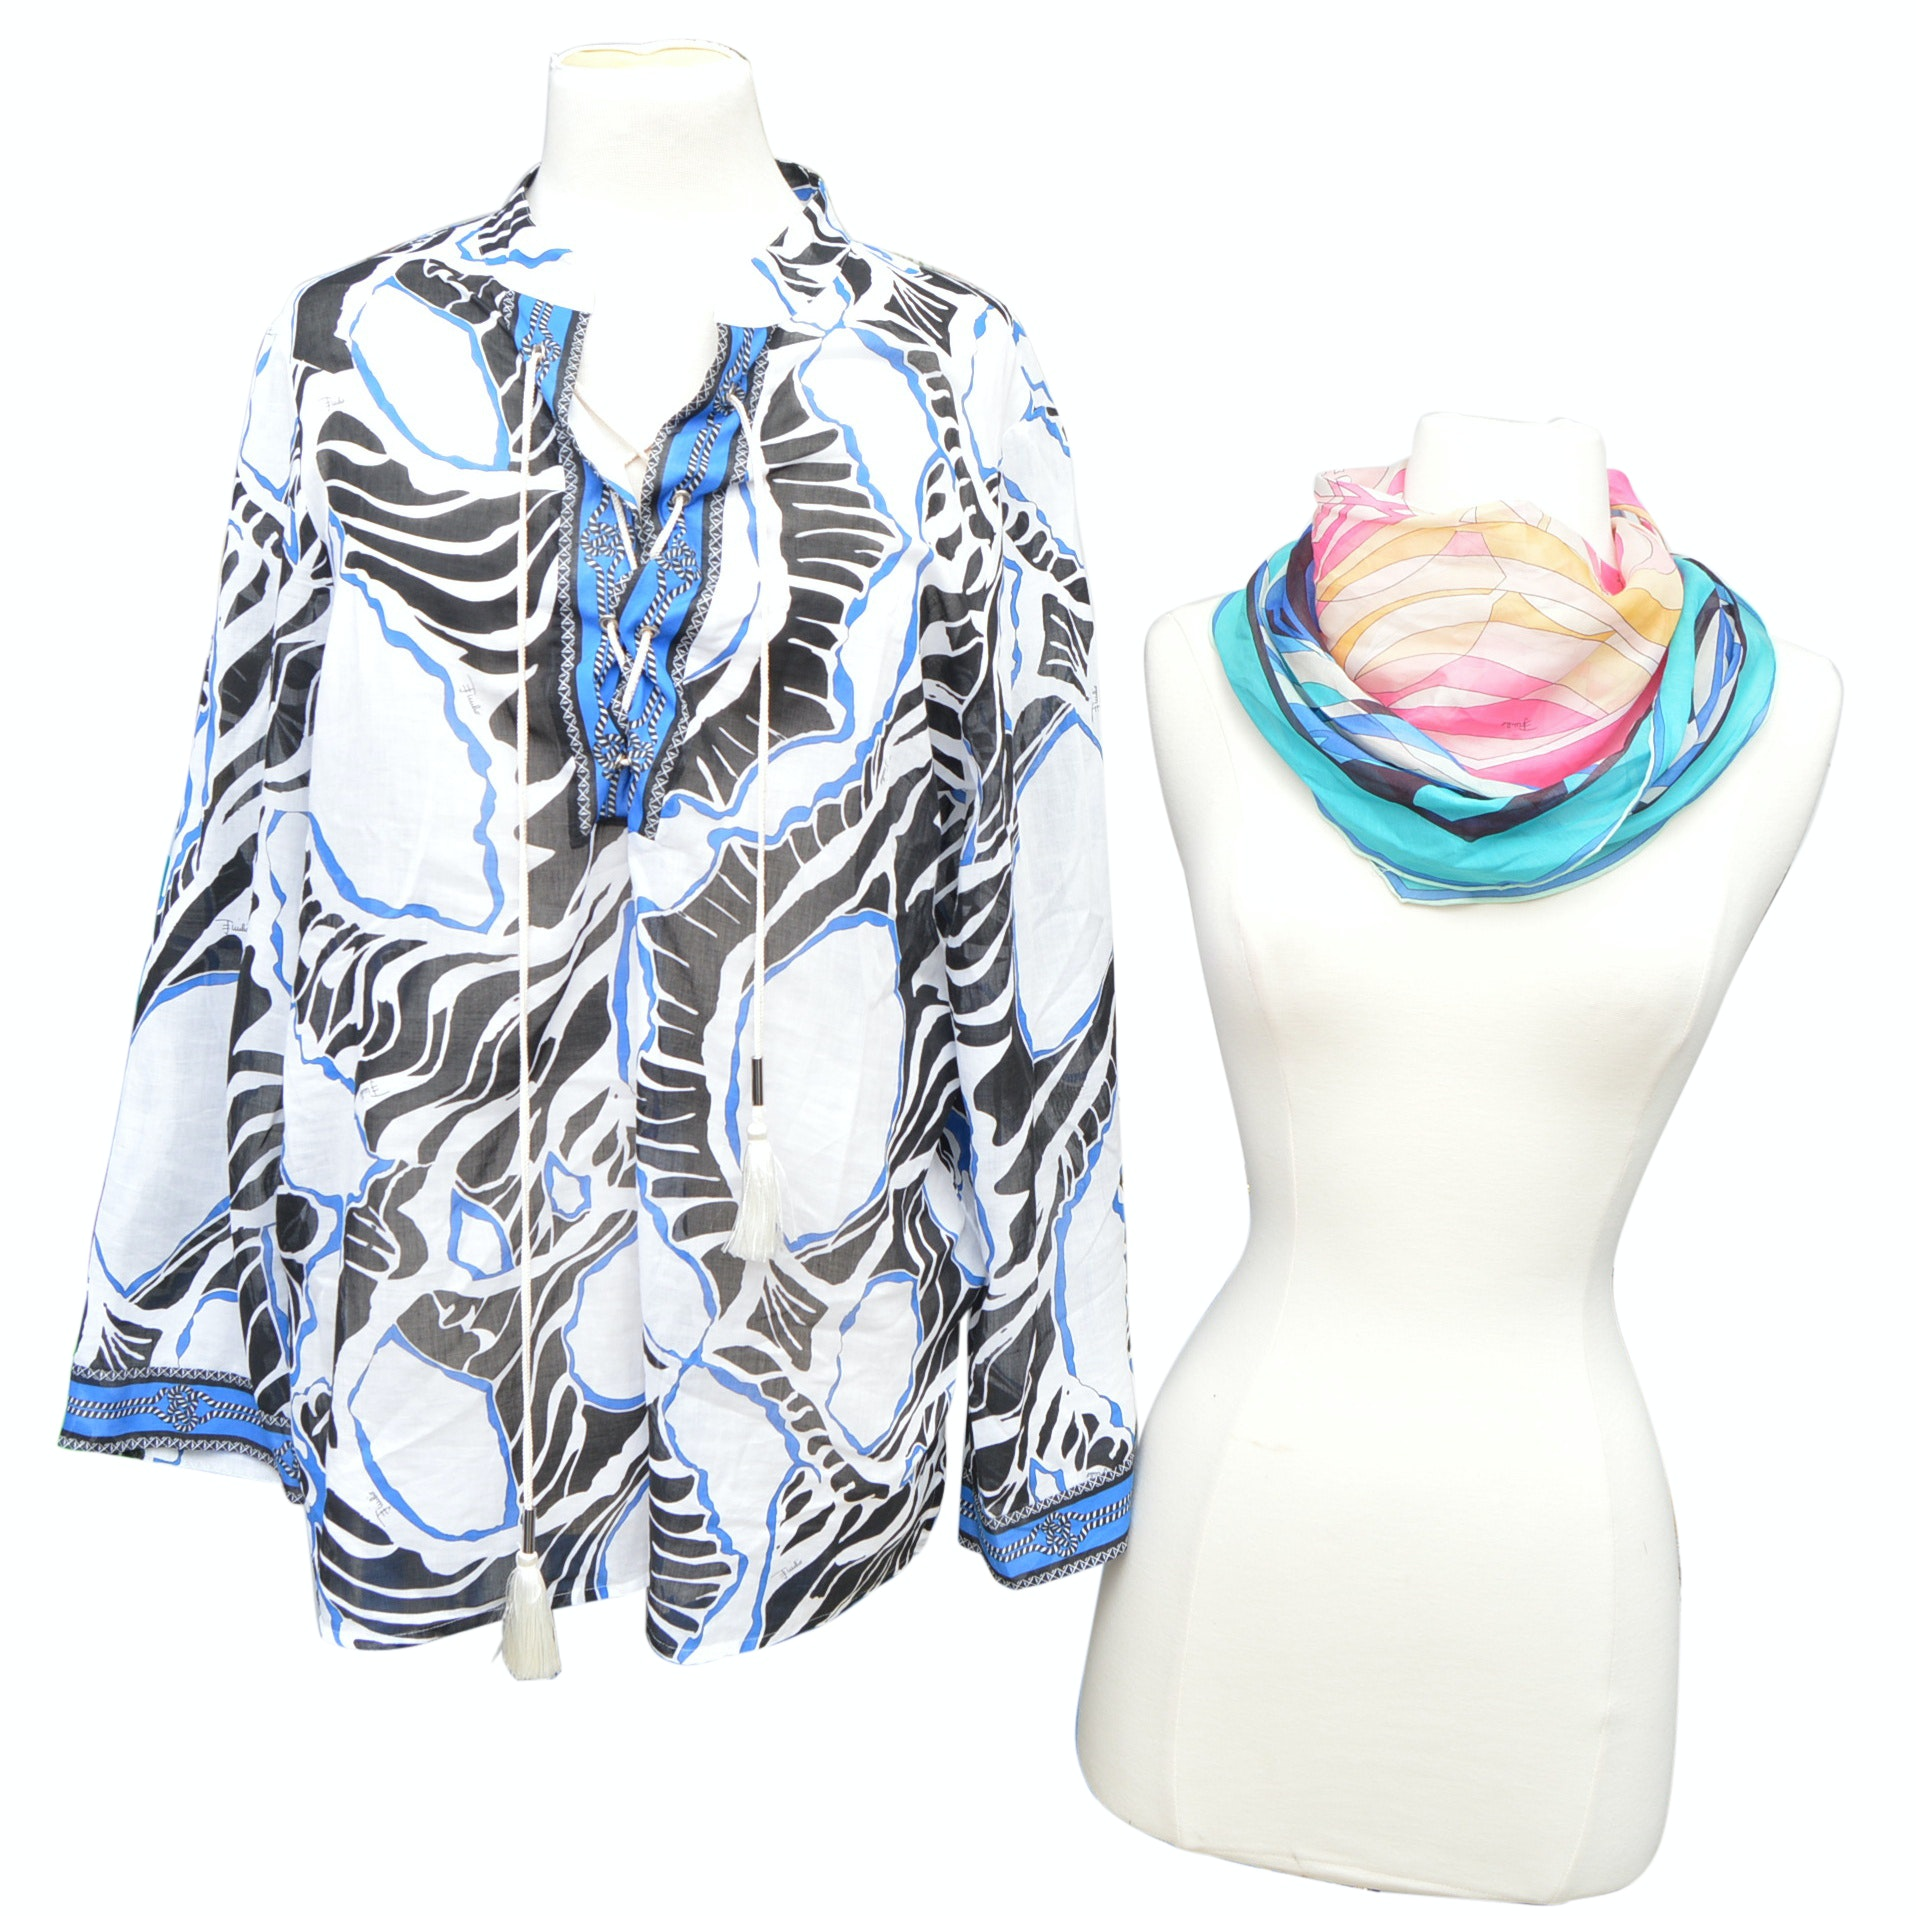 Emilio Pucci Tunic Top and Pucci Scarves